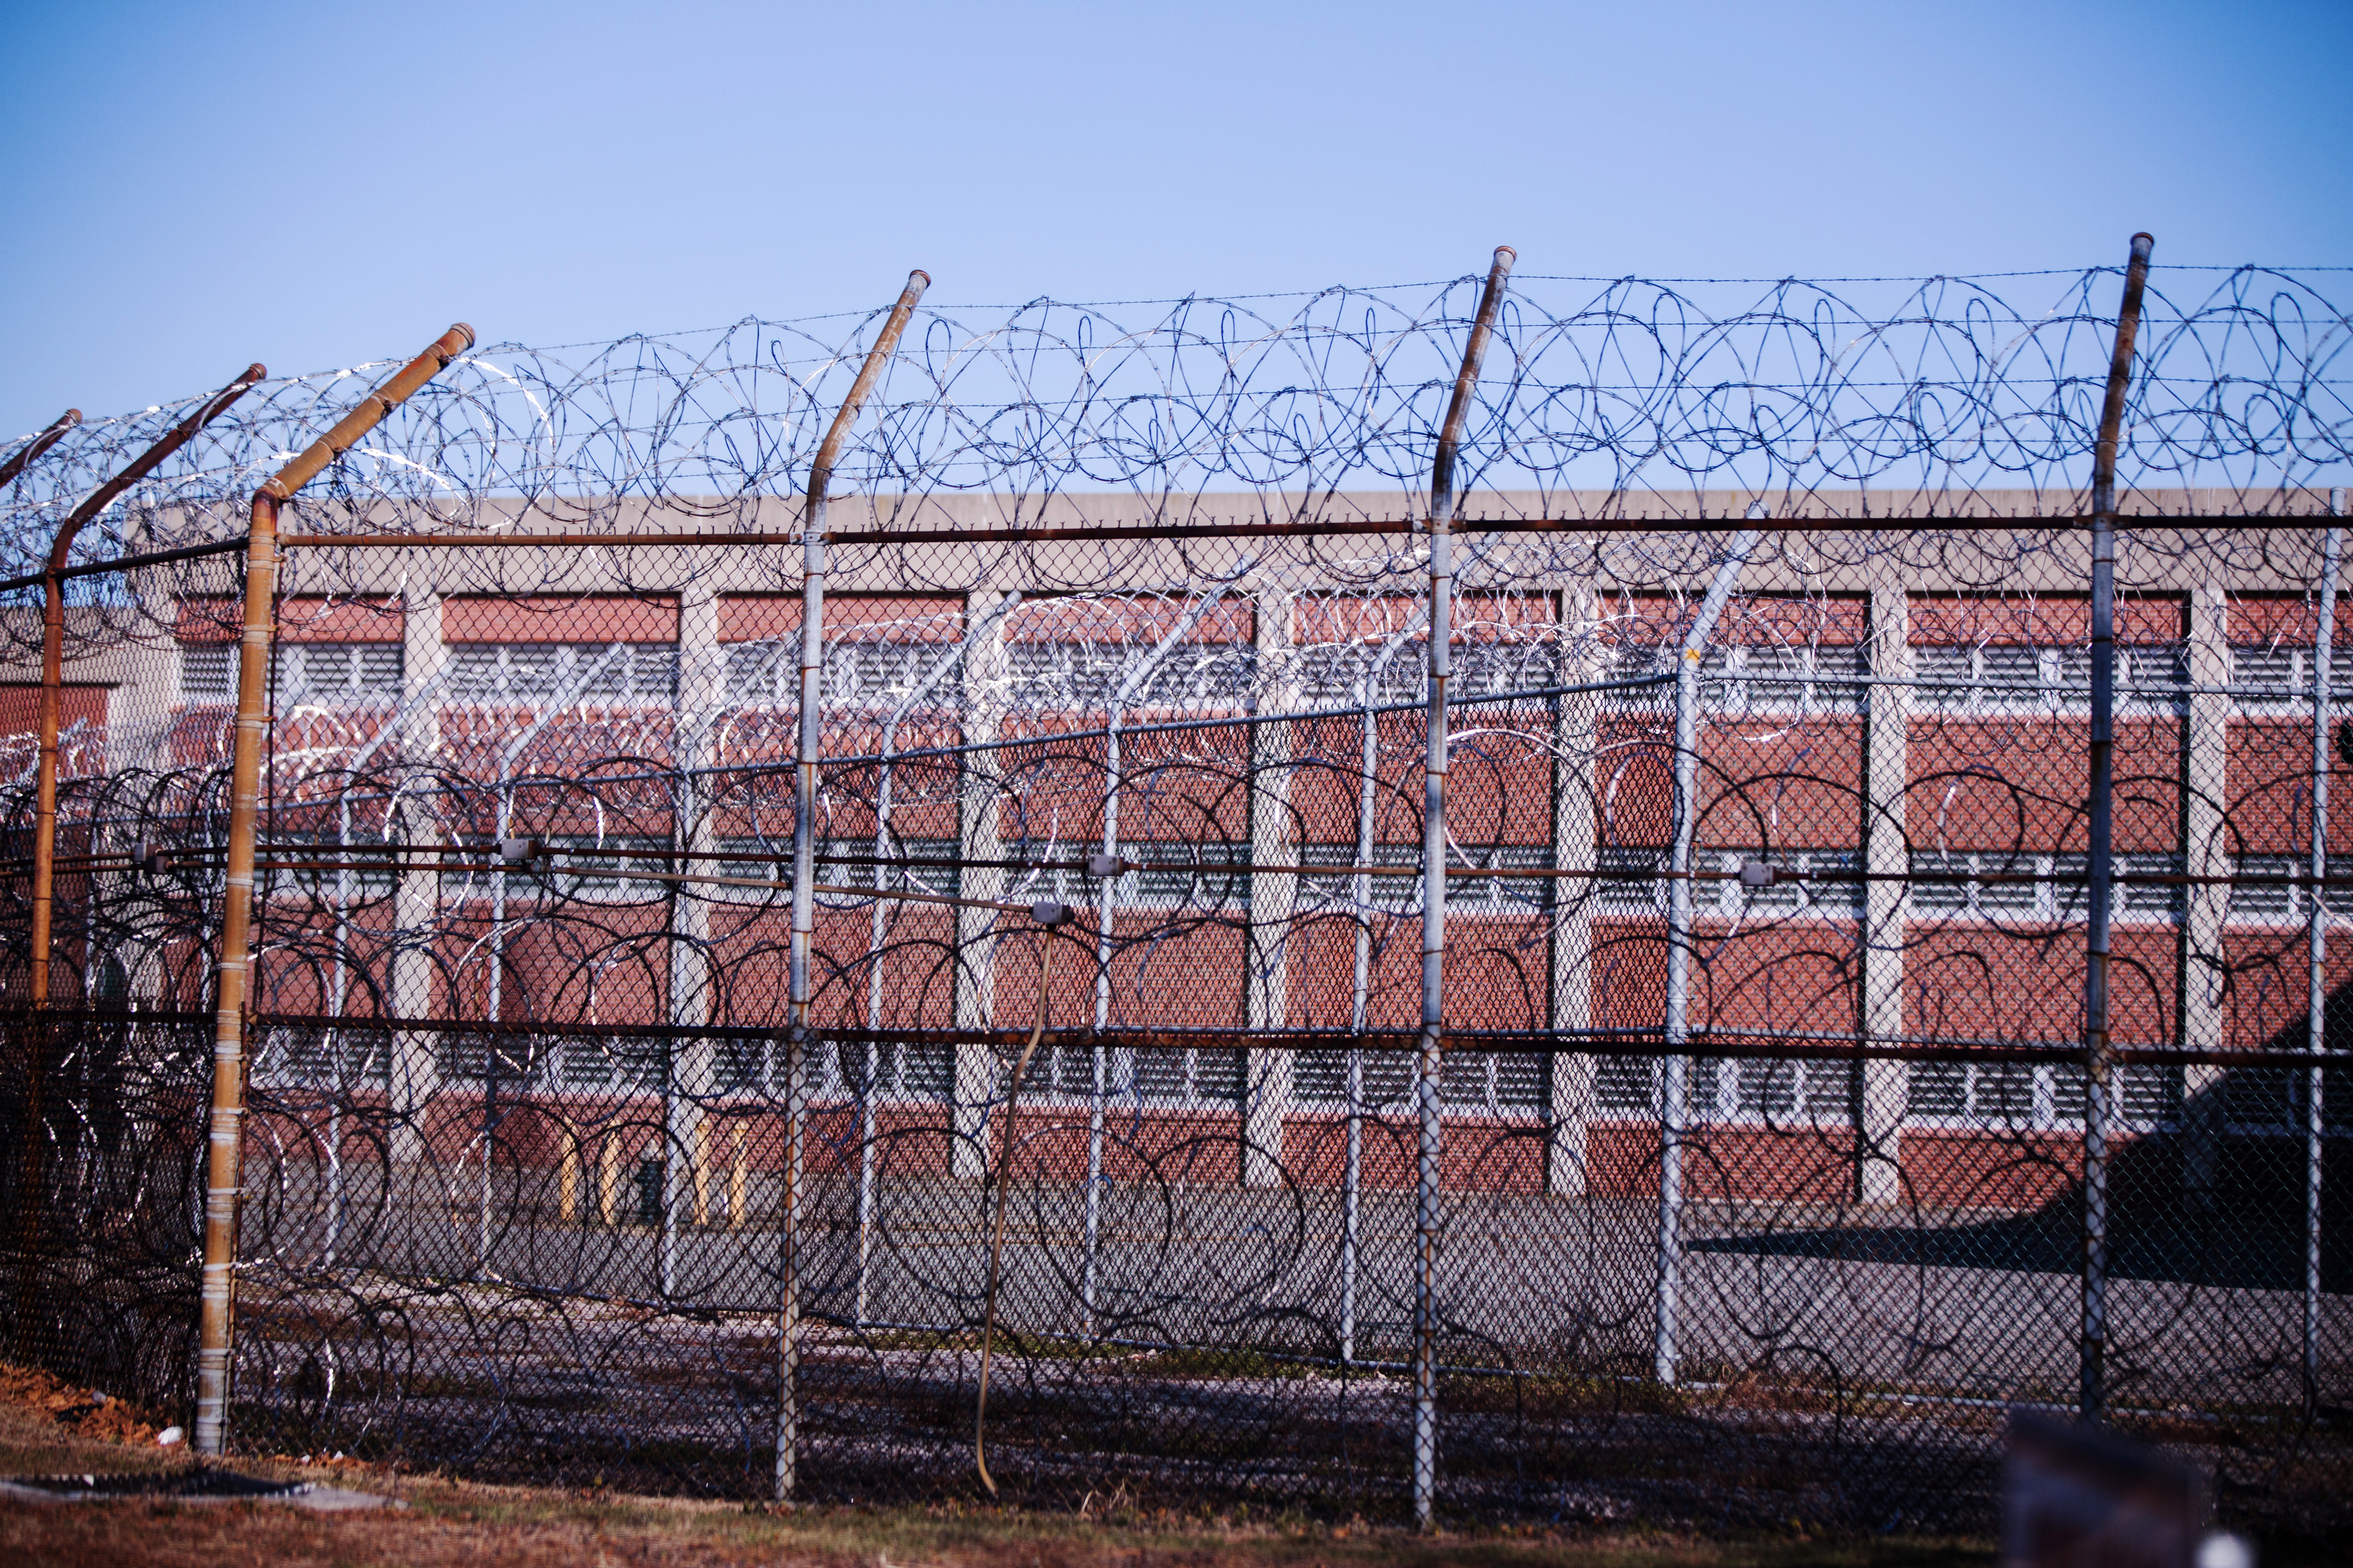 Barbed wire fences surround a building on Rikers Island Correctional Facility in New York on Dec. 24, 2013.